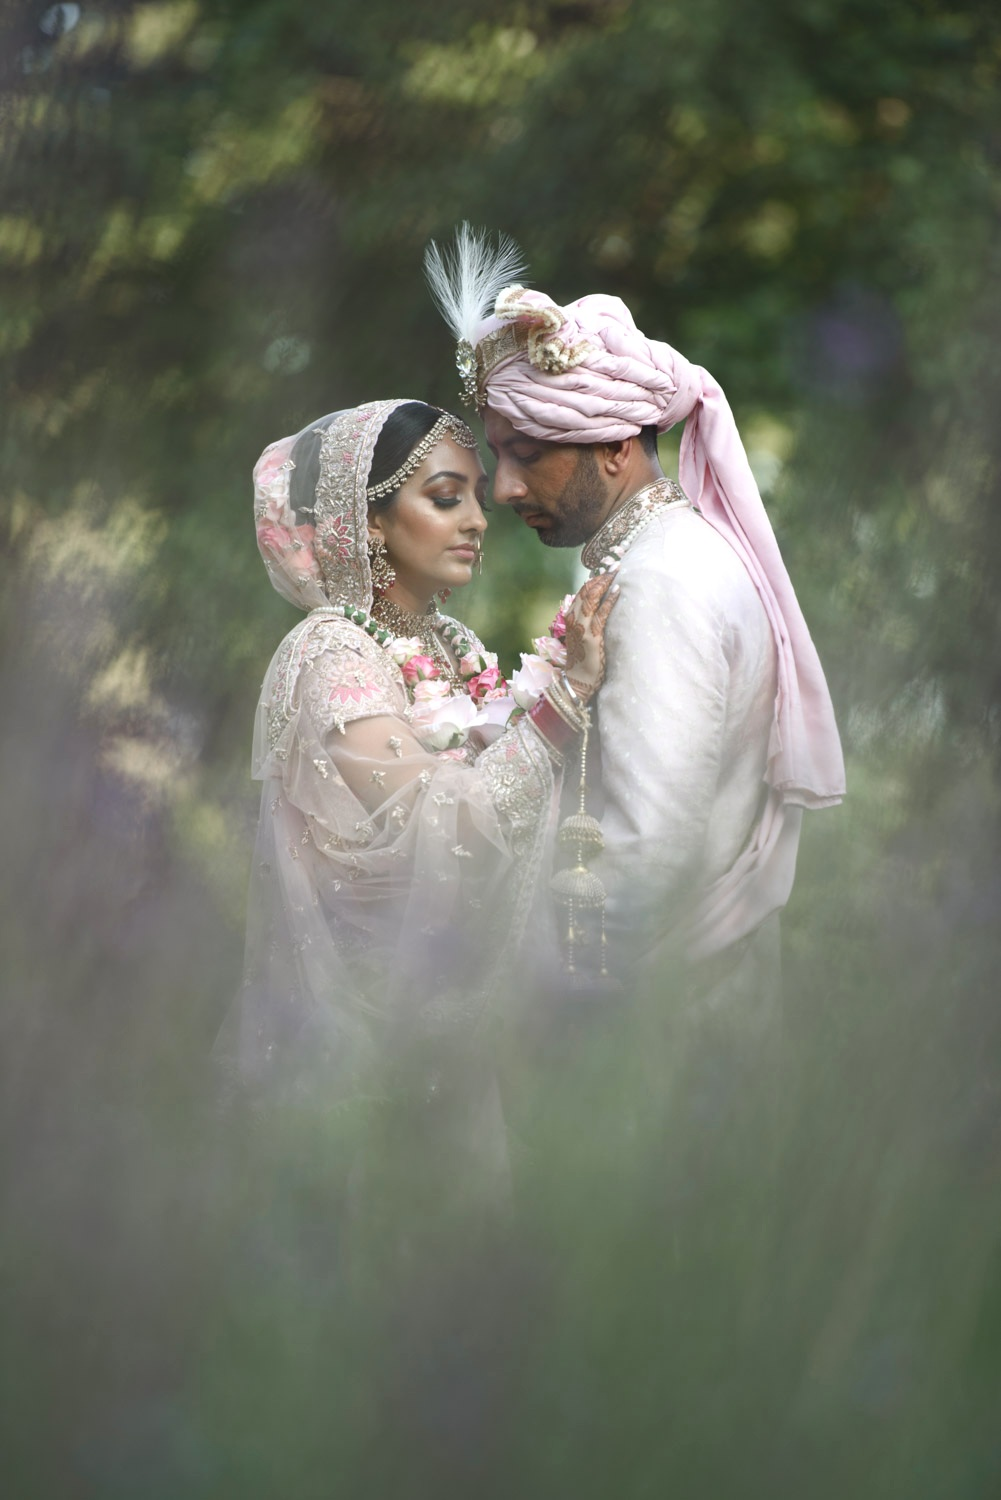 Asian Wedding Photography - Sikh and Dread